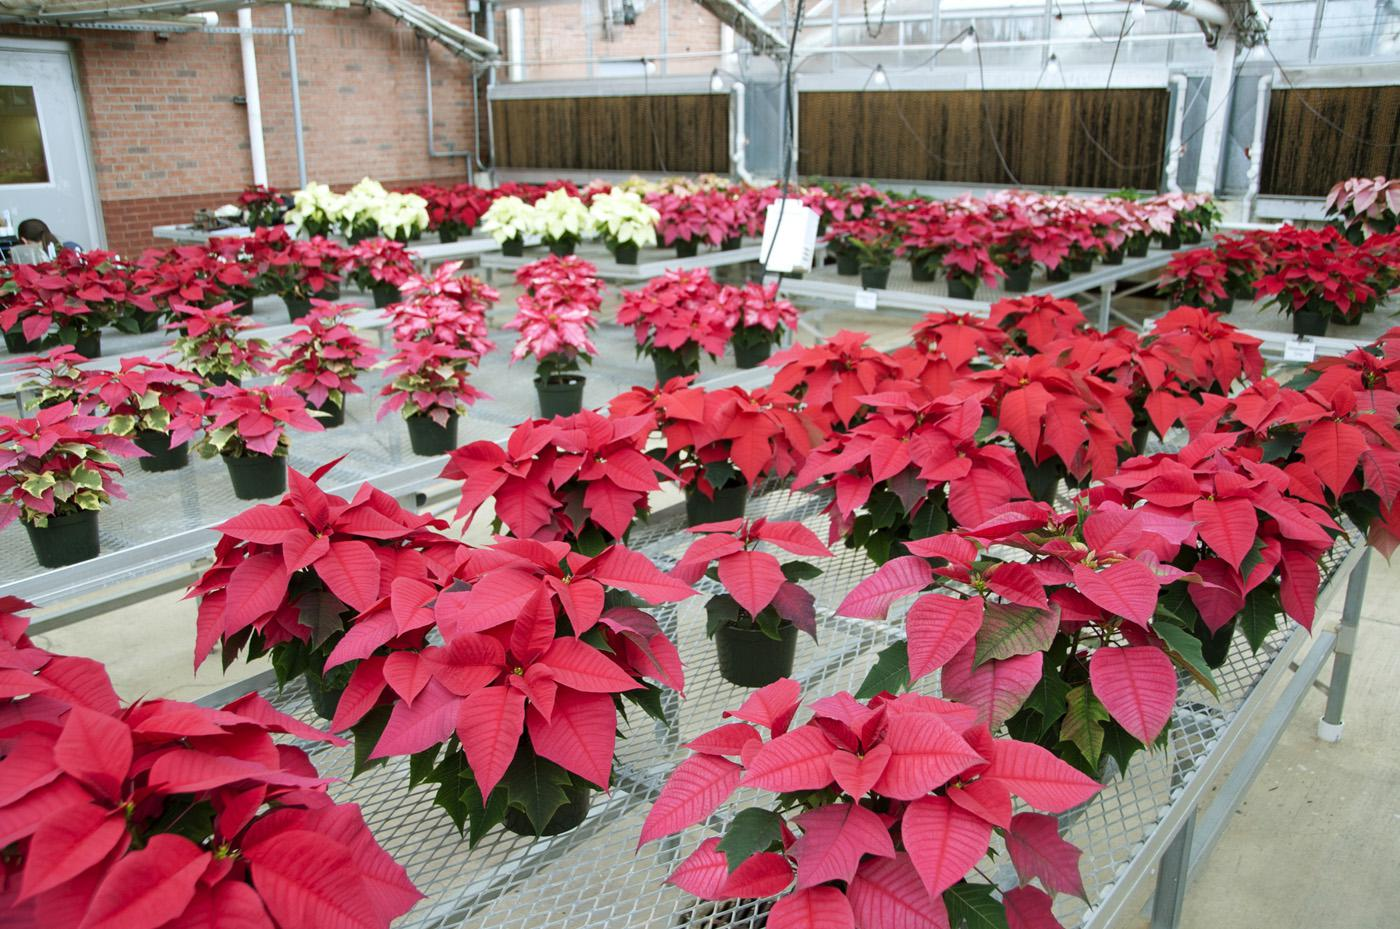 Mississippi State University researchers tested an organic method of treating poinsettia cuttings to fight a devastating fungus that causes stem and root rot. Mississippi producers grow an estimated 200,000 poinsettias per year, valued at $1 million. (Photo by Kat Lawrence)